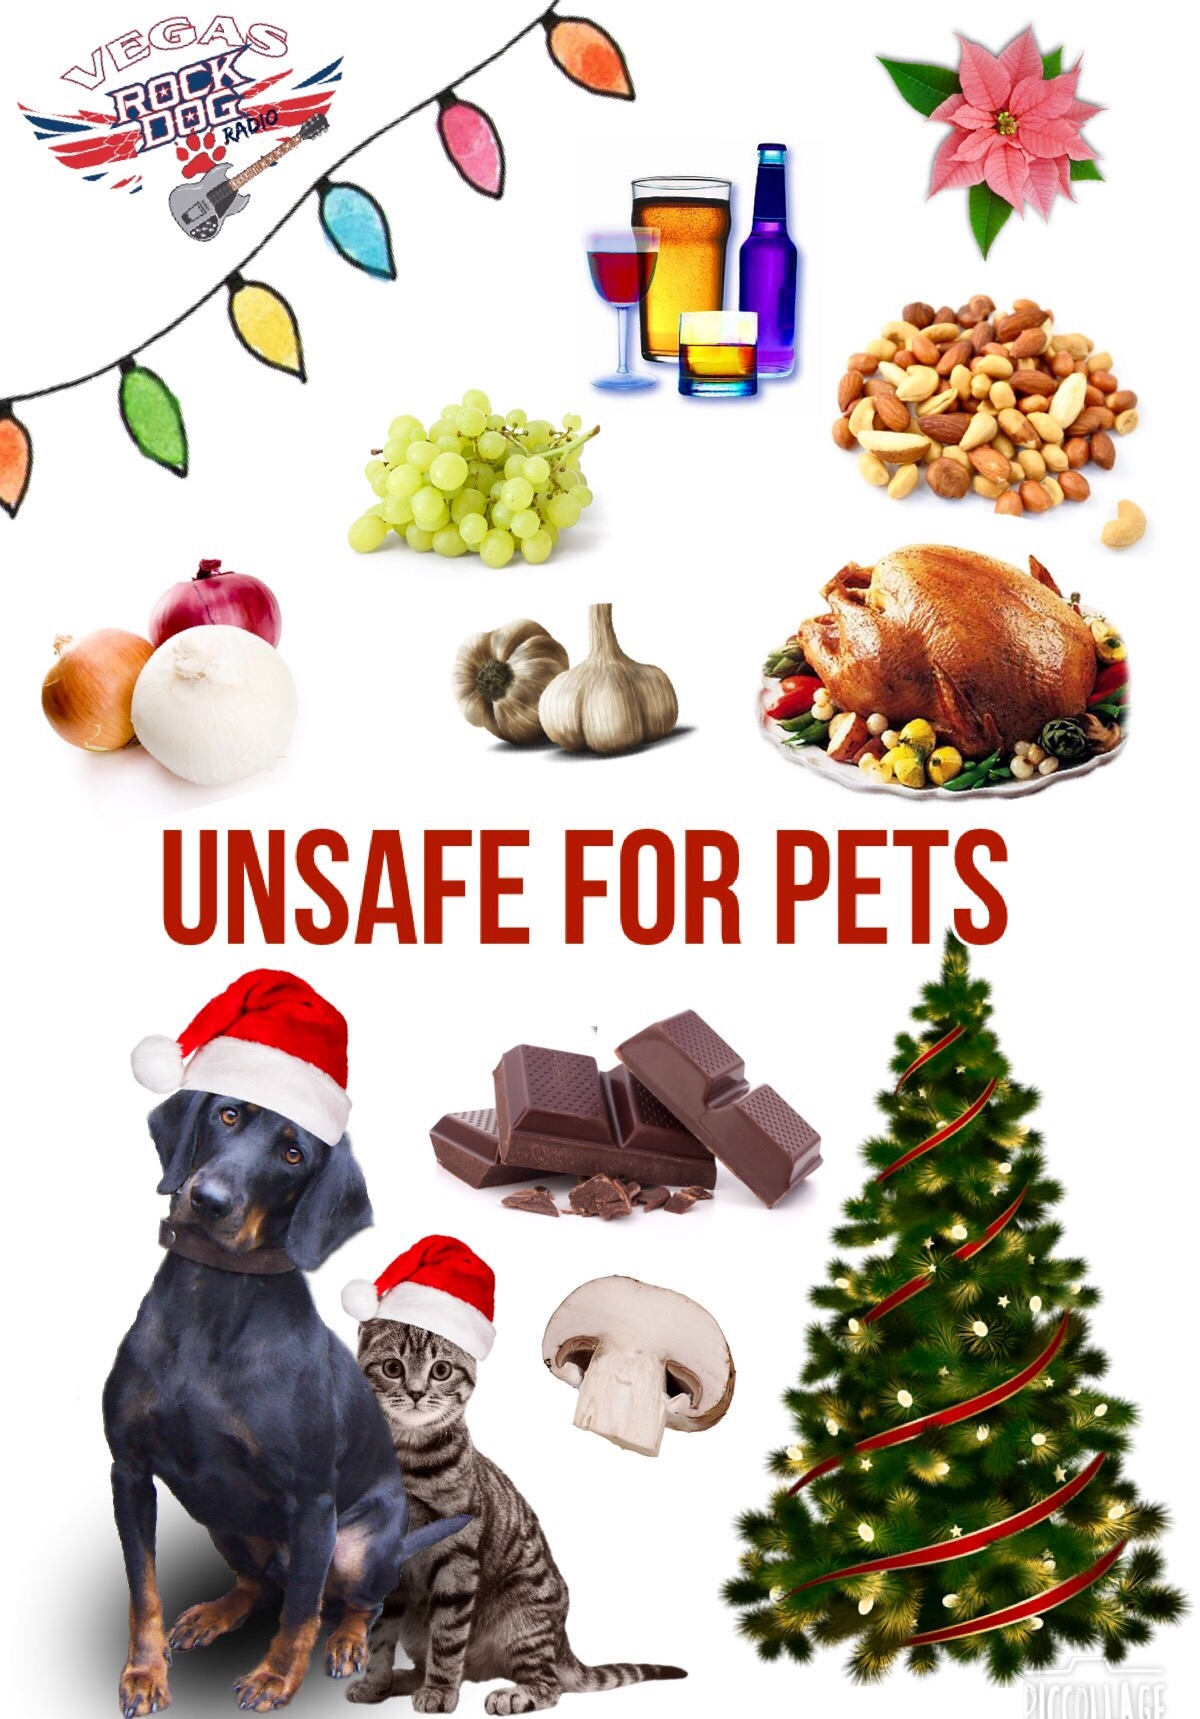 Did You Know The Harm These Holiday Foods And Plants Can Do To Your Pets?